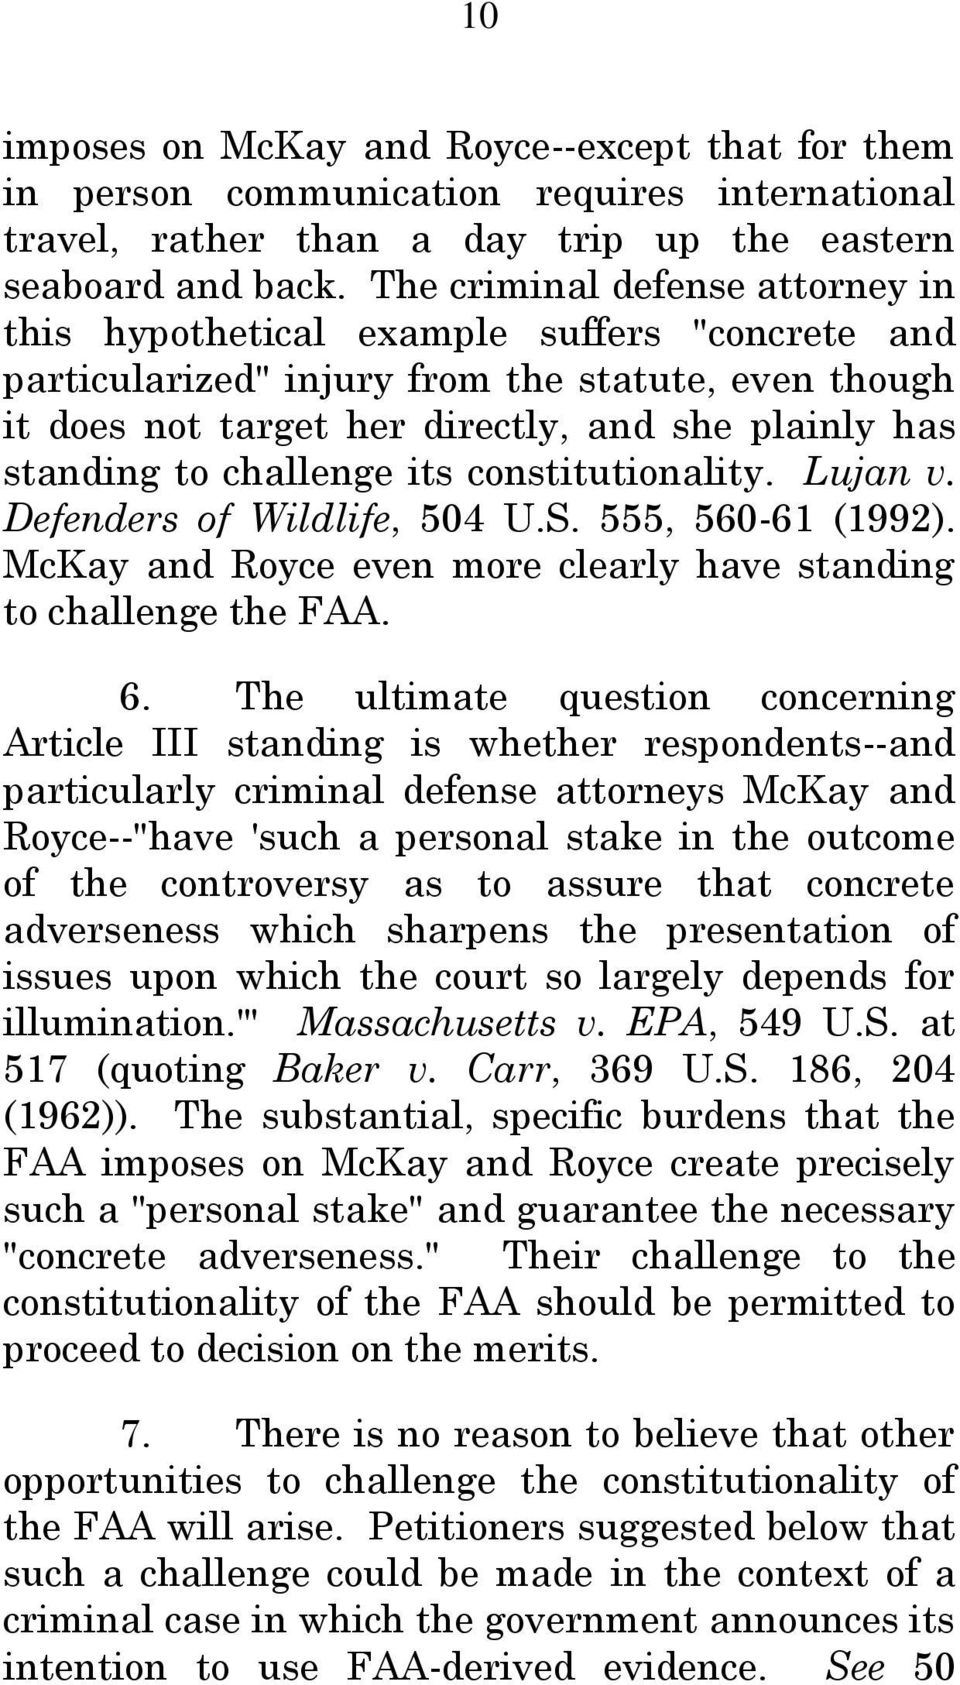 challenge its constitutionality. Lujan v. Defenders of Wildlife, 504 U.S. 555, 560-61 (1992). McKay and Royce even more clearly have standing to challenge the FAA. 6.